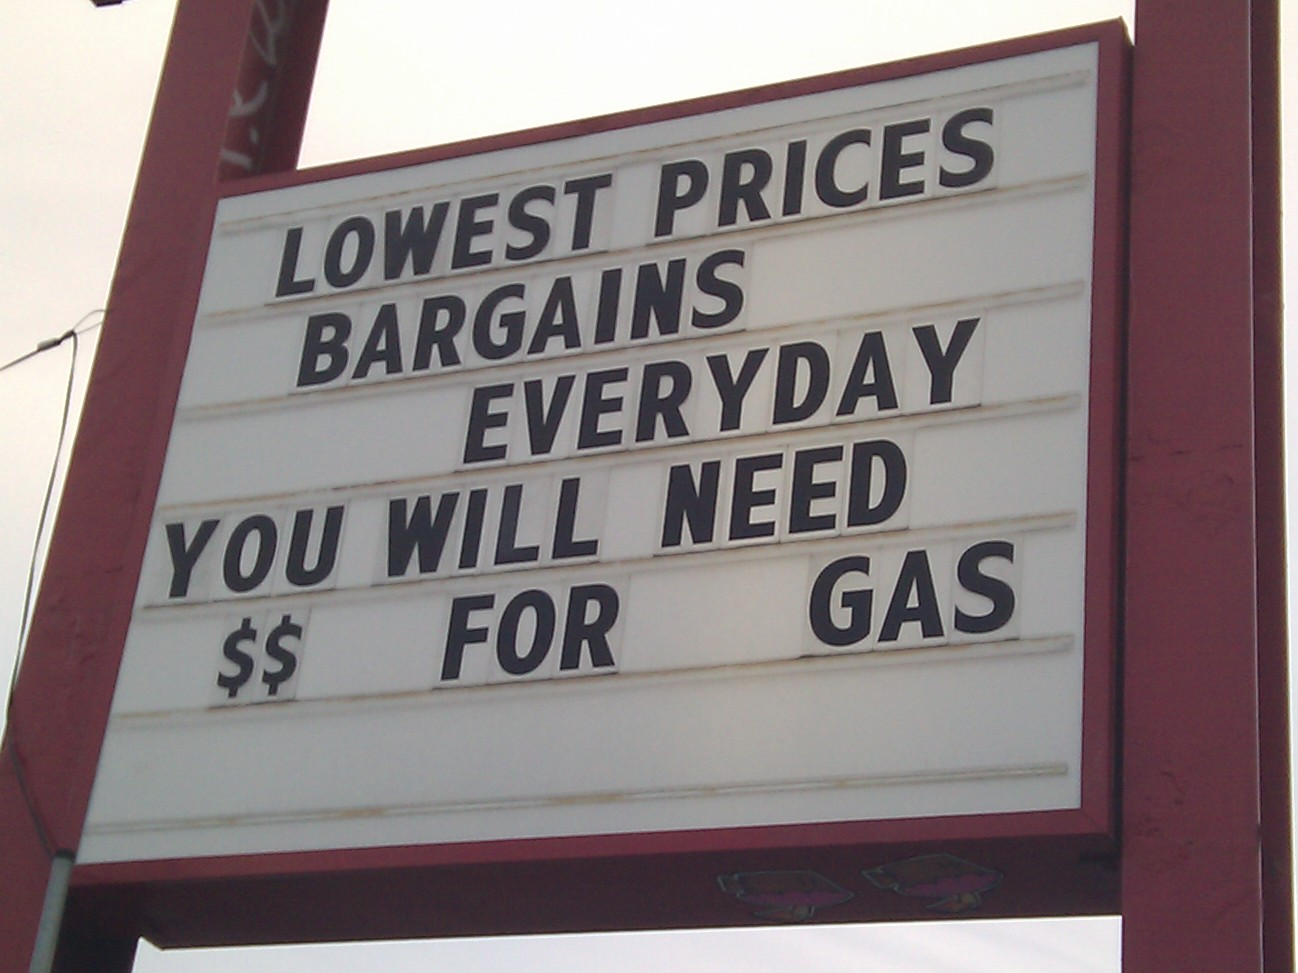 you-will-need-money-for-gas.jpg